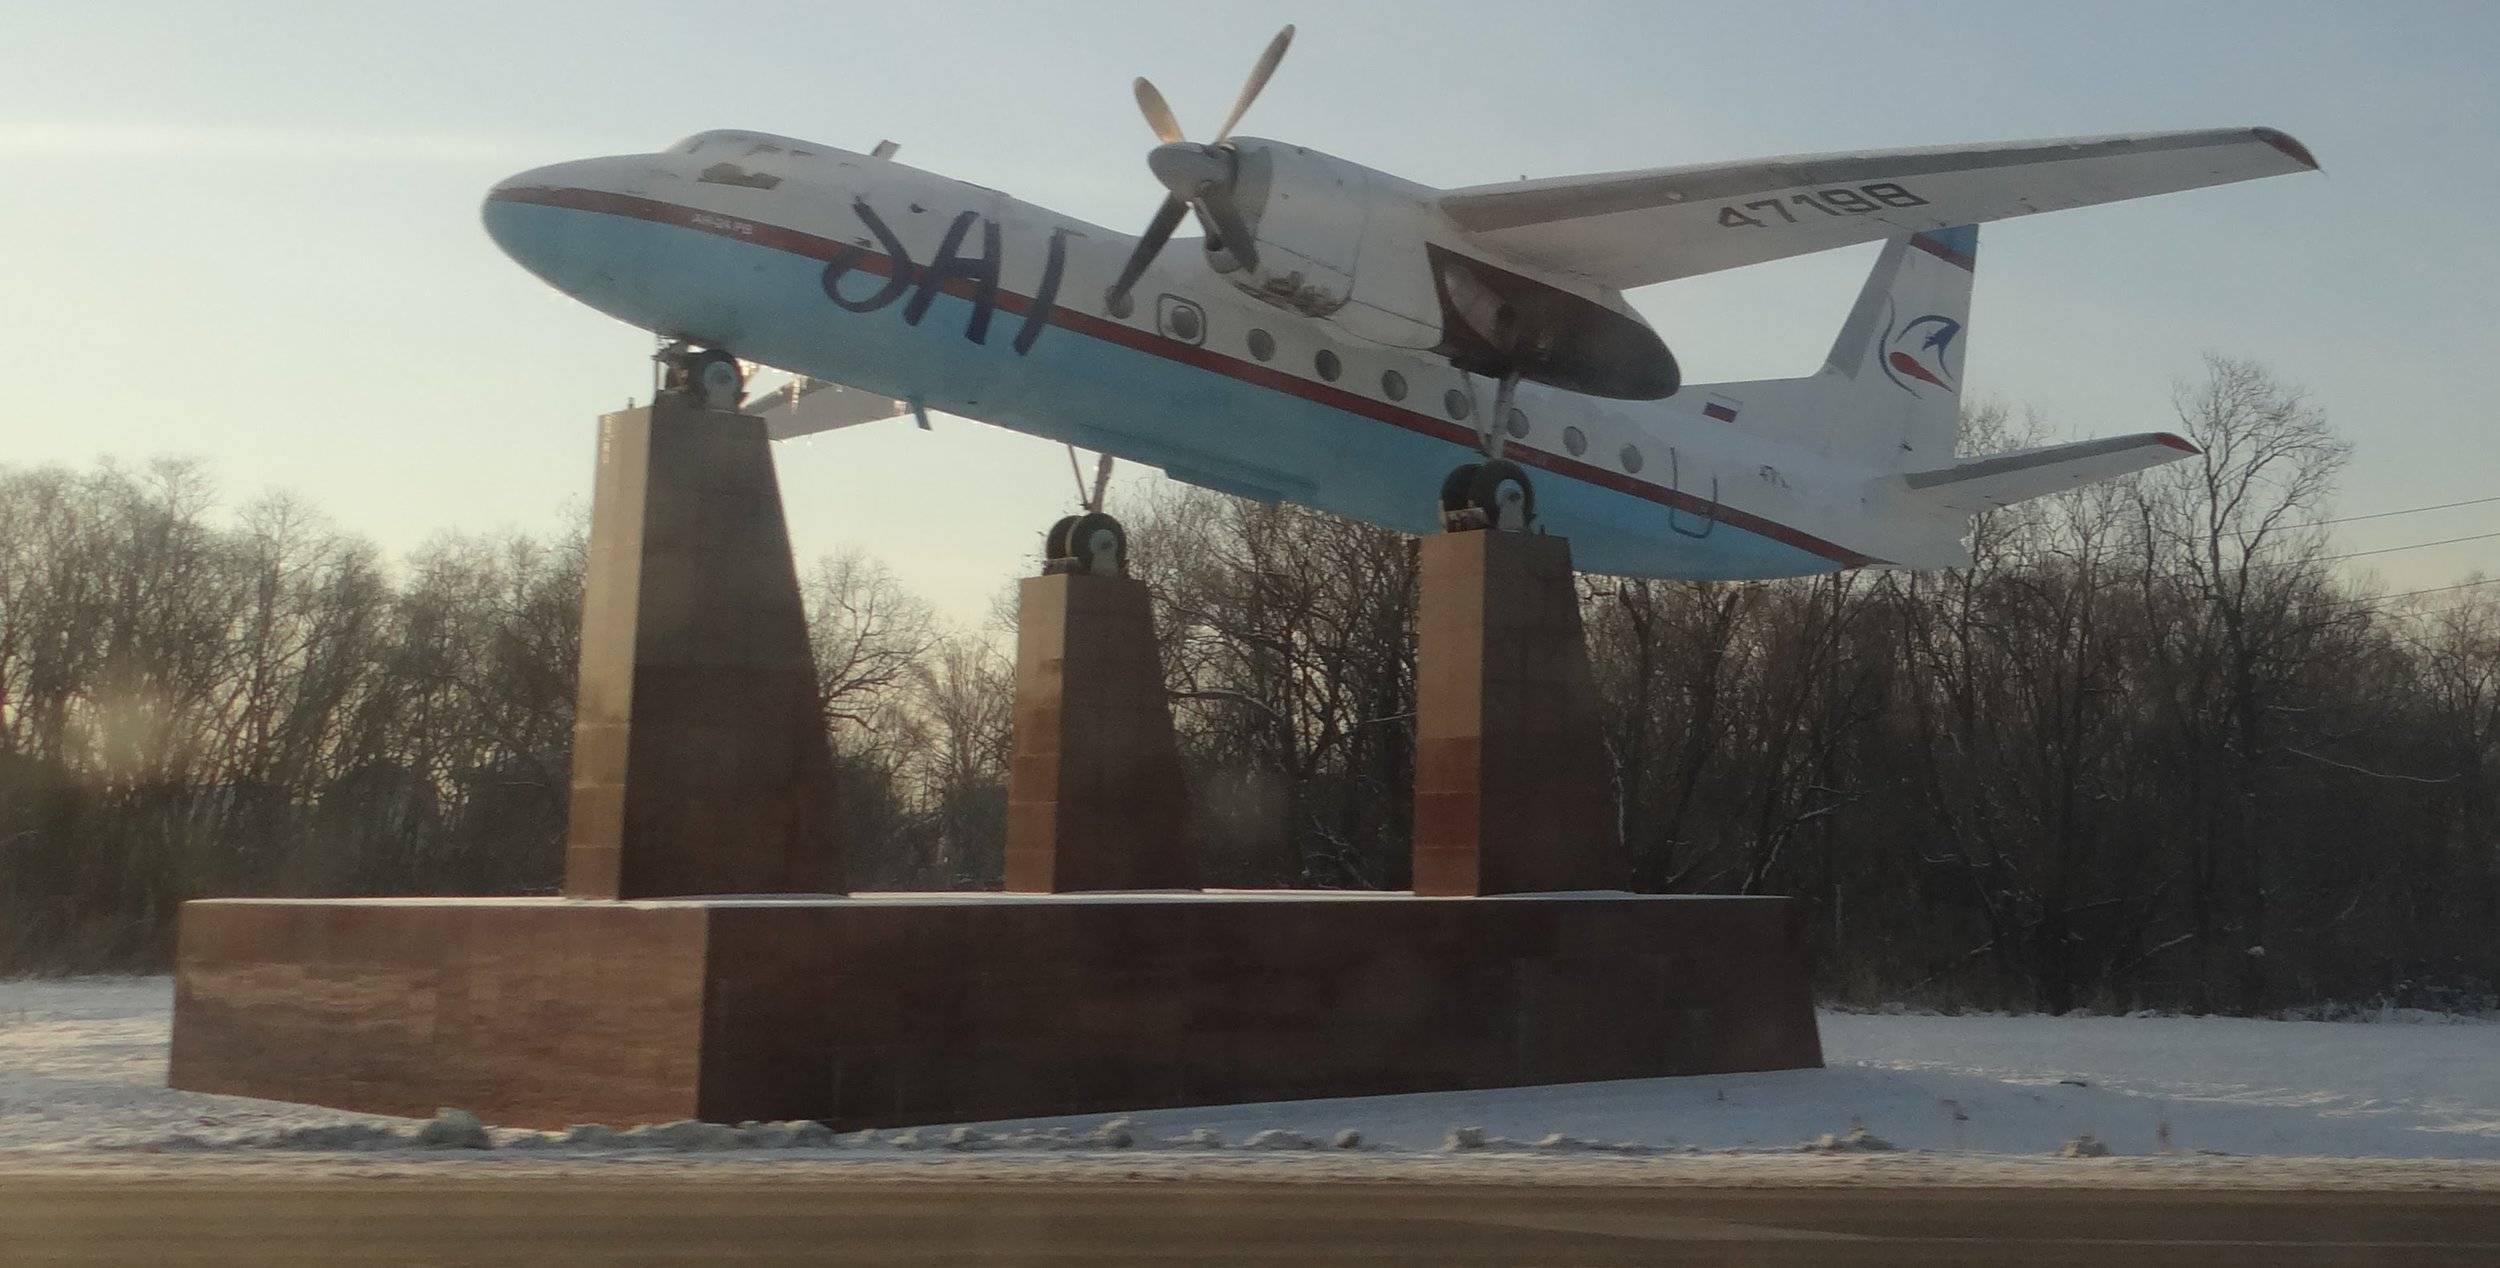 Just outside Yuzhno-Sakhalinsk airport, an Antonov An-24 in the livery of local airline SAT, now part of Aurora (Aeroflot Group)